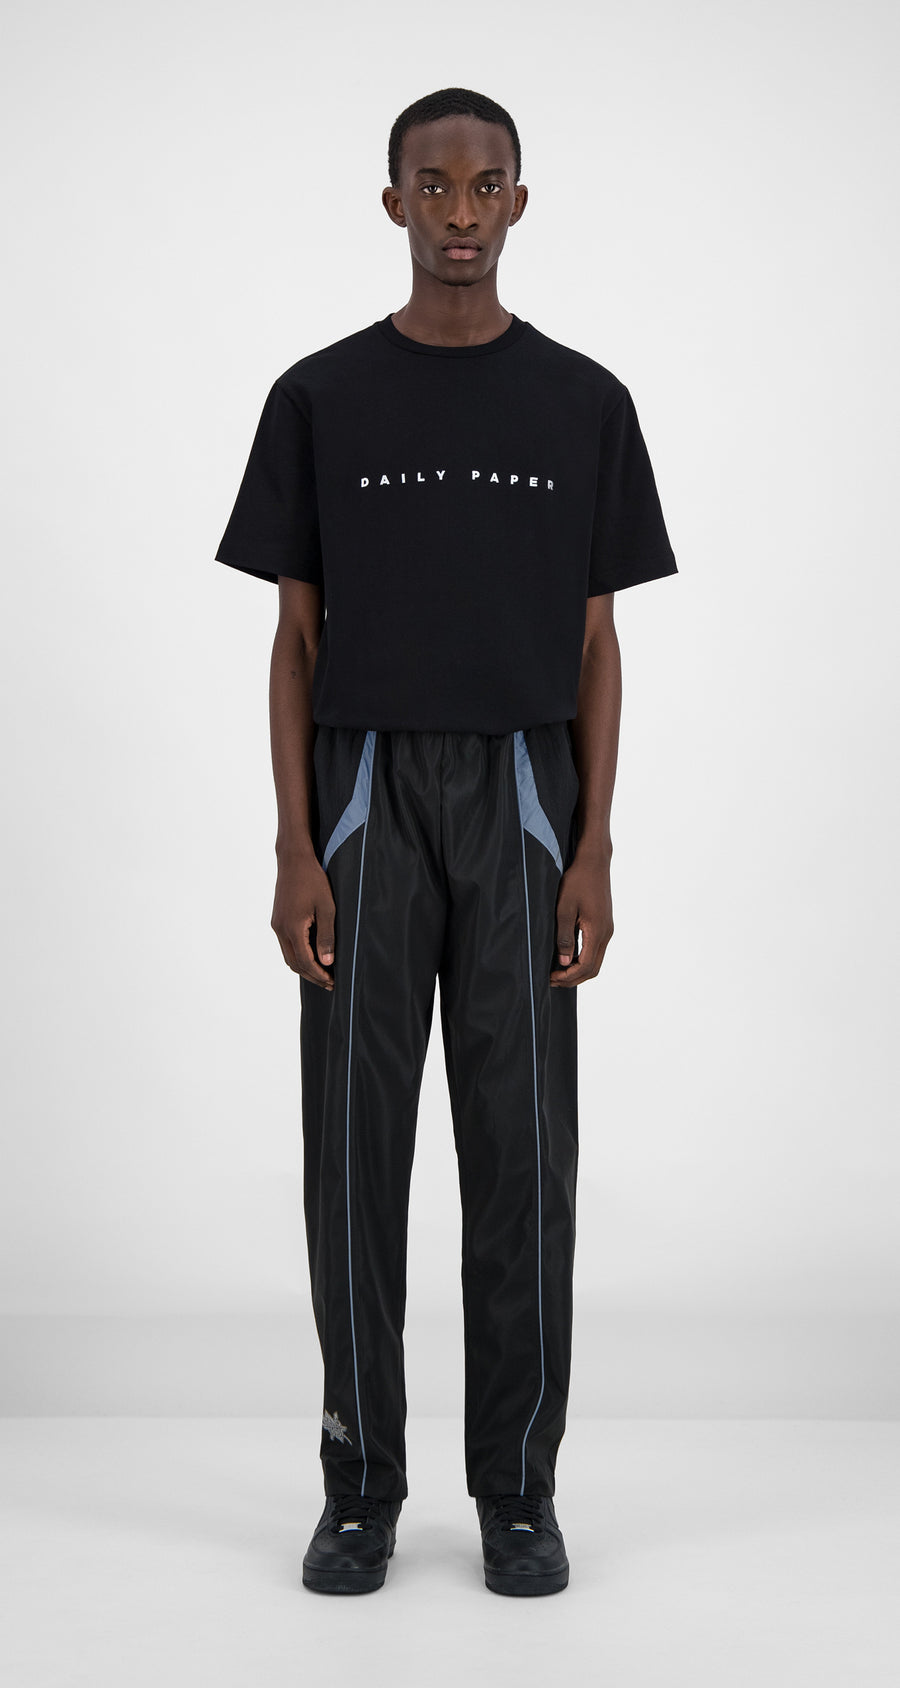 Daily Paper - Daily Paper x STARBOY Black Guka Pants Men Front